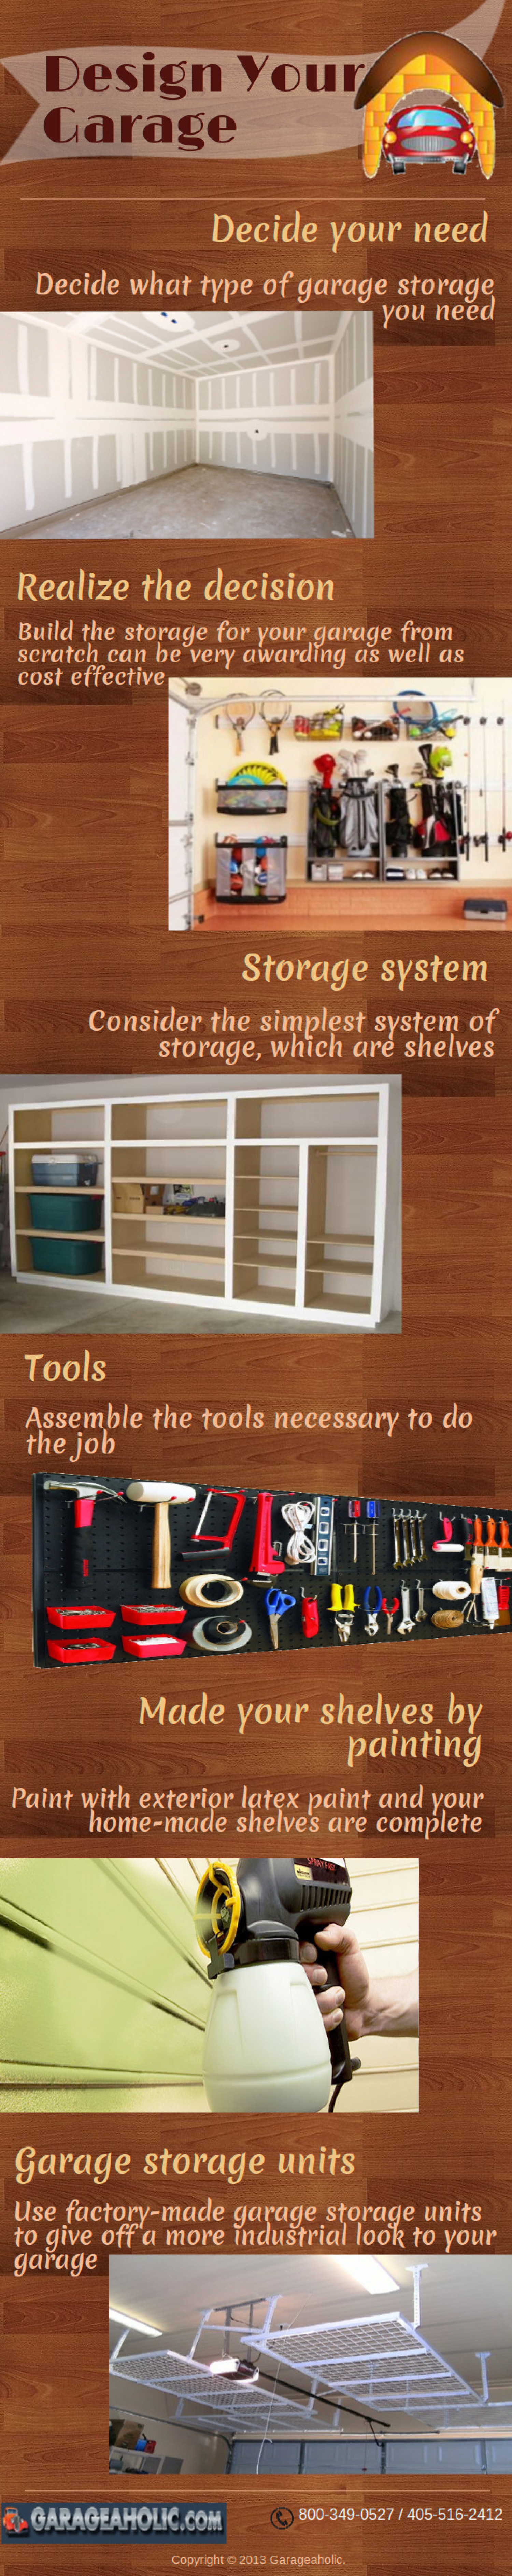 Design Your Garage Infographic